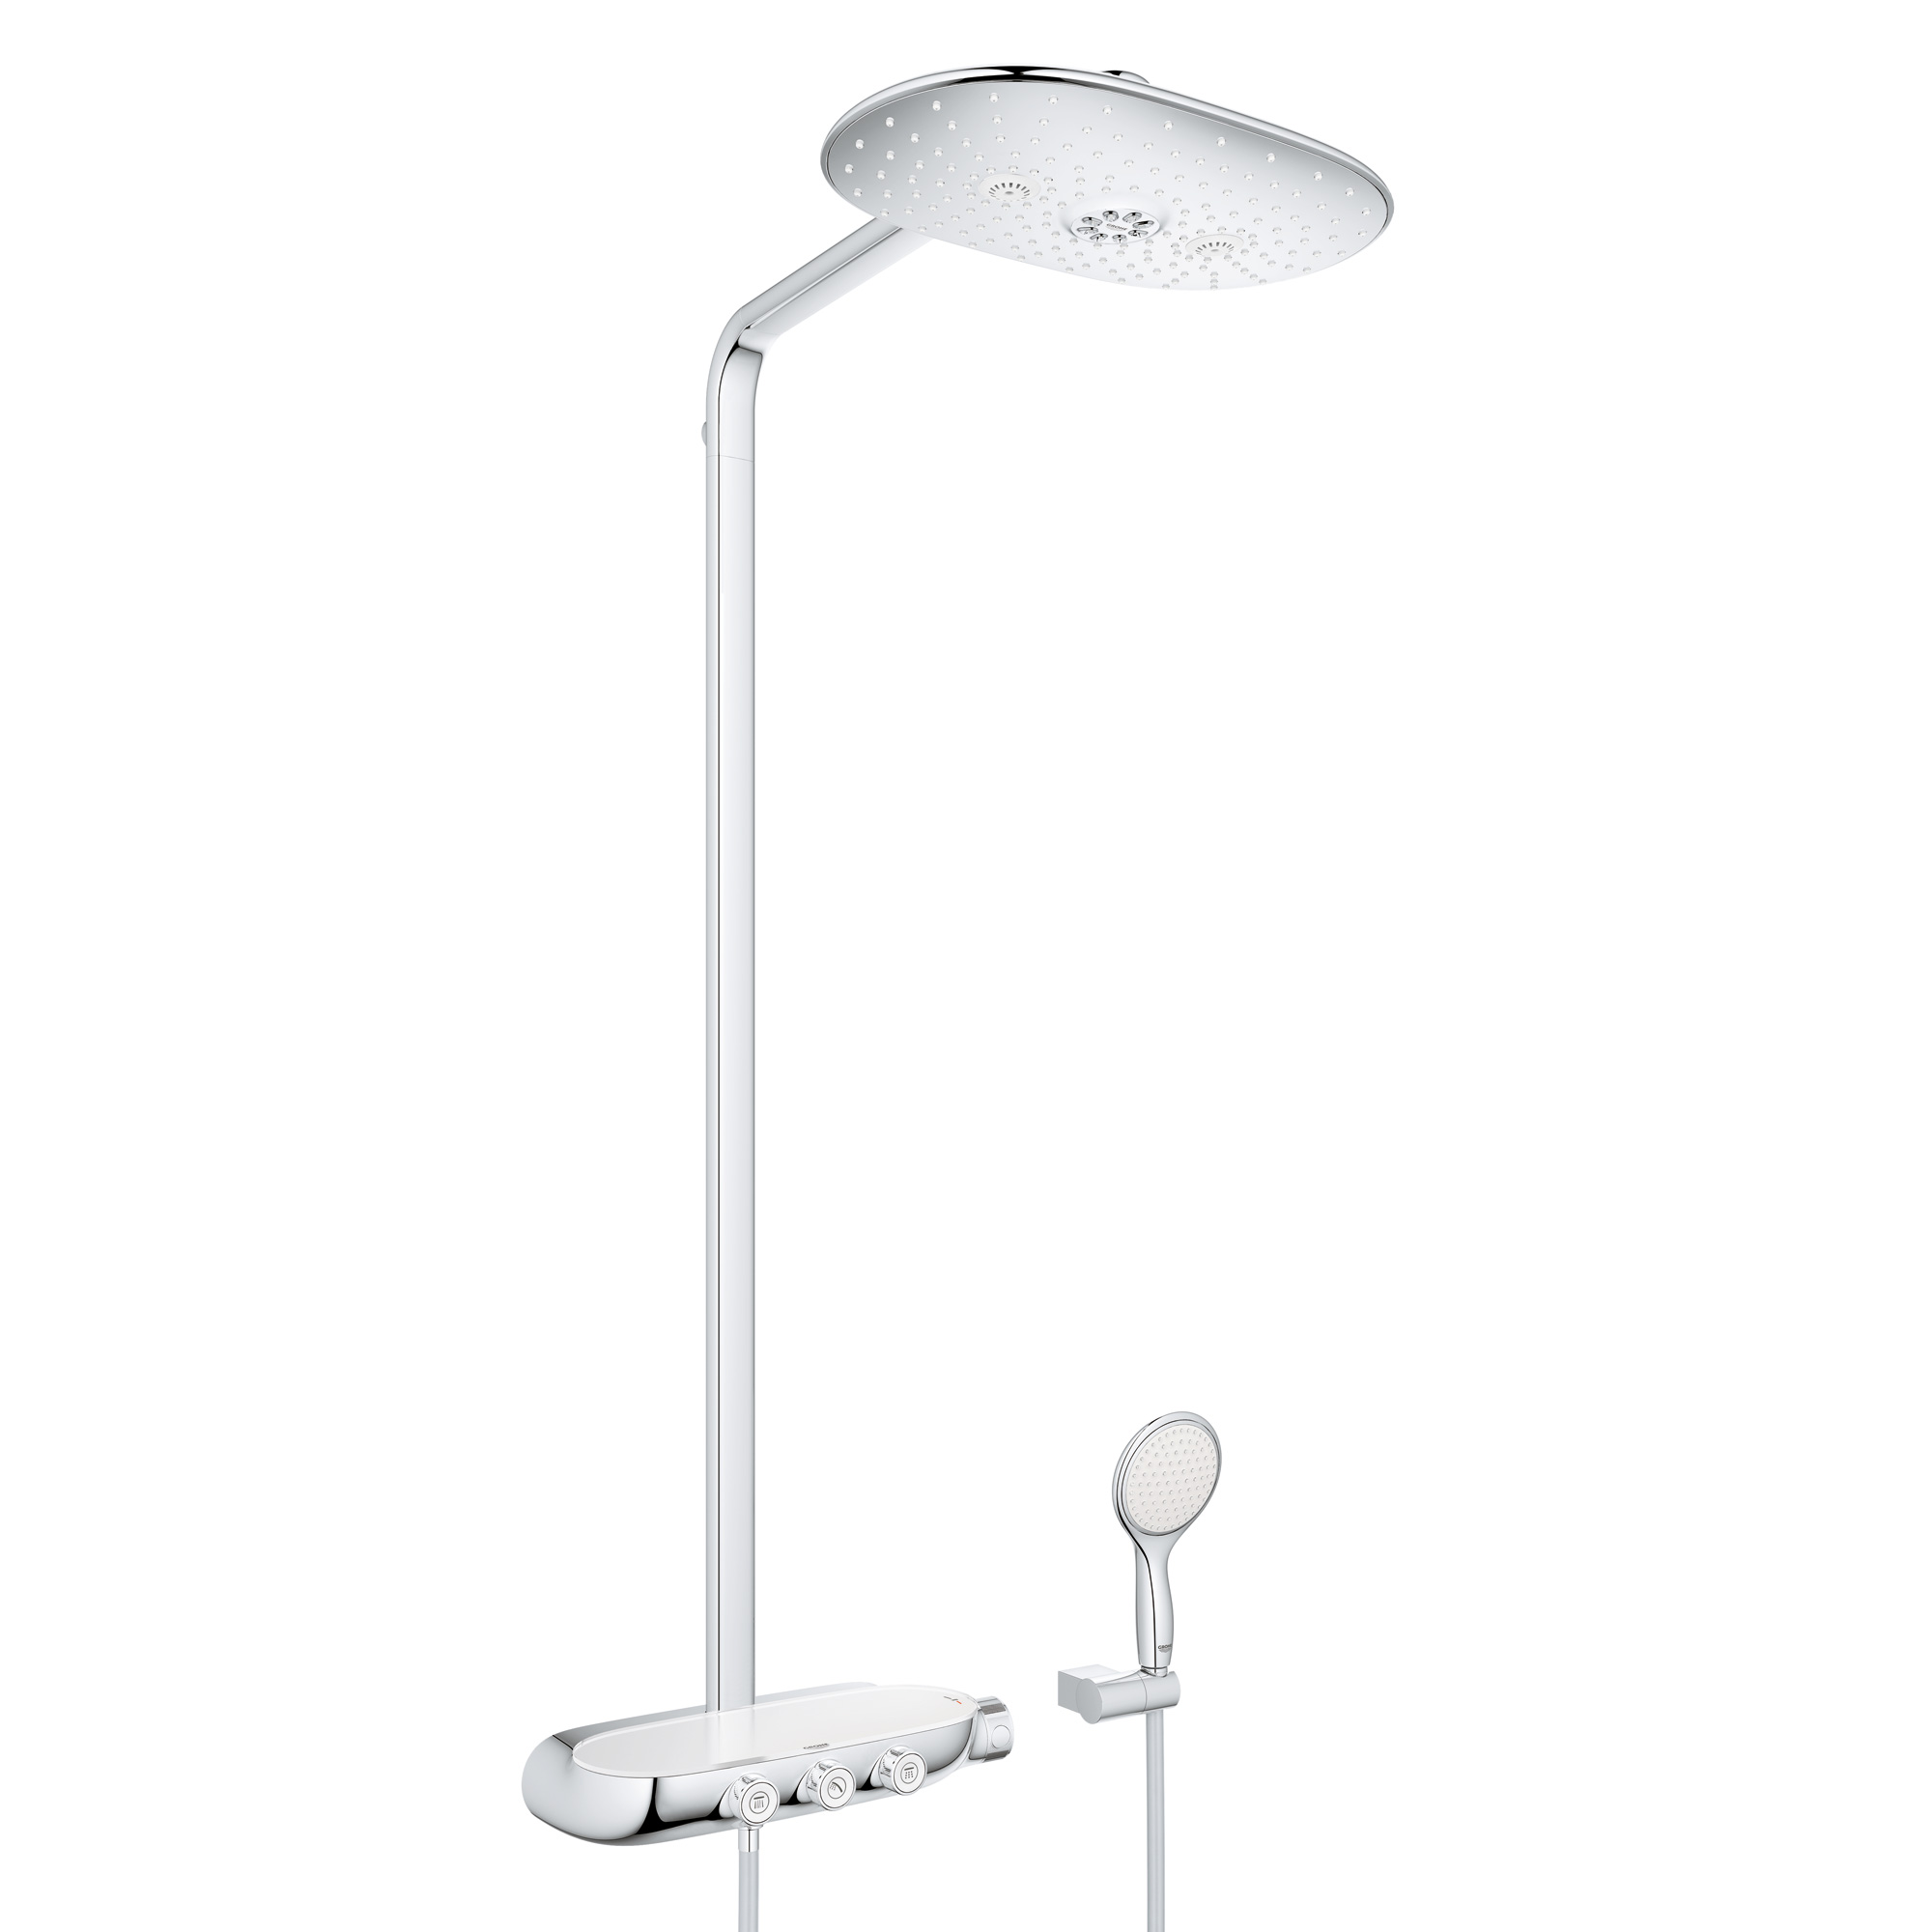 Душевая стойка Grohe Rainshower SmartControl 26250000 20160803204257_00-00009202-1.jpg